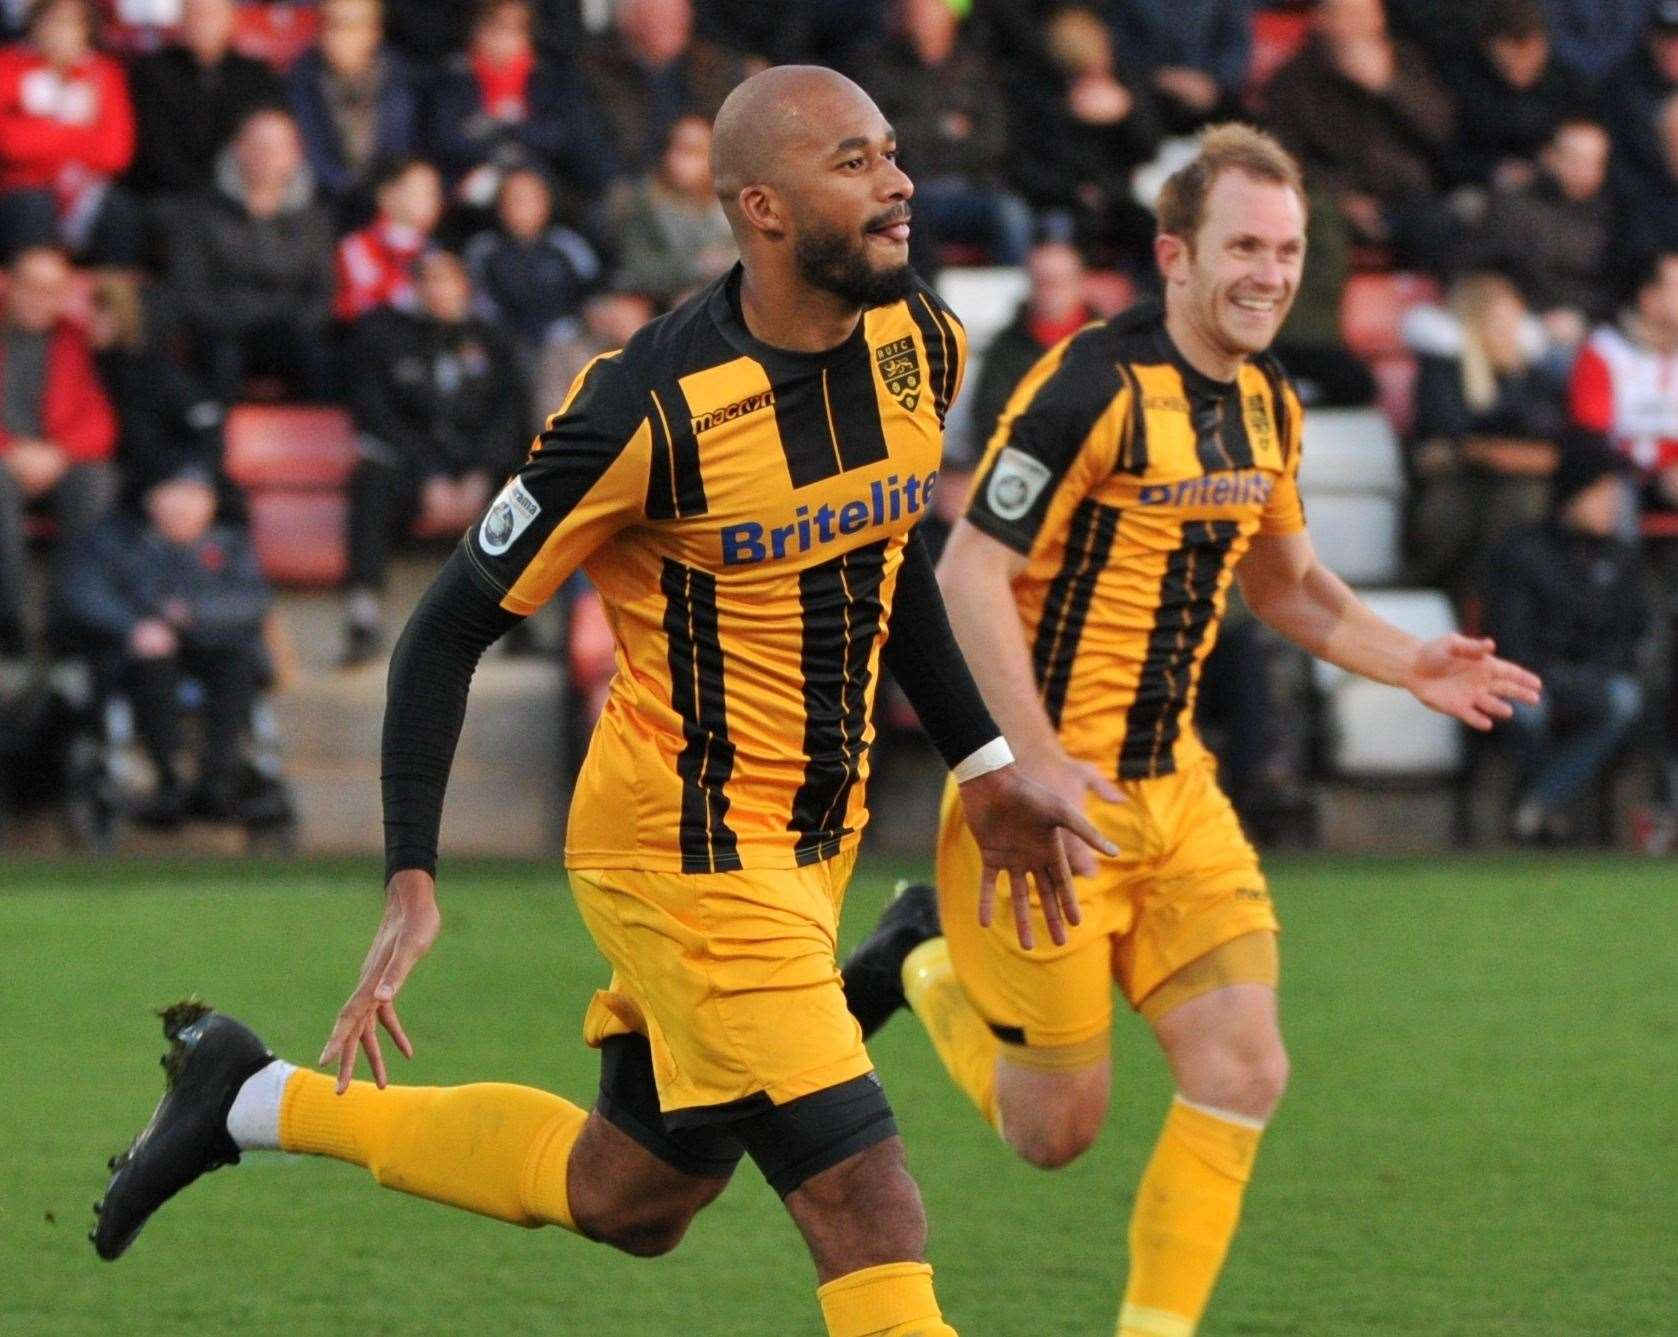 Delano Sam-Yorke celebrates his second goal in Maidstone's FA Cup win at Chelmsford in 2017 Picture: Steve Terrell